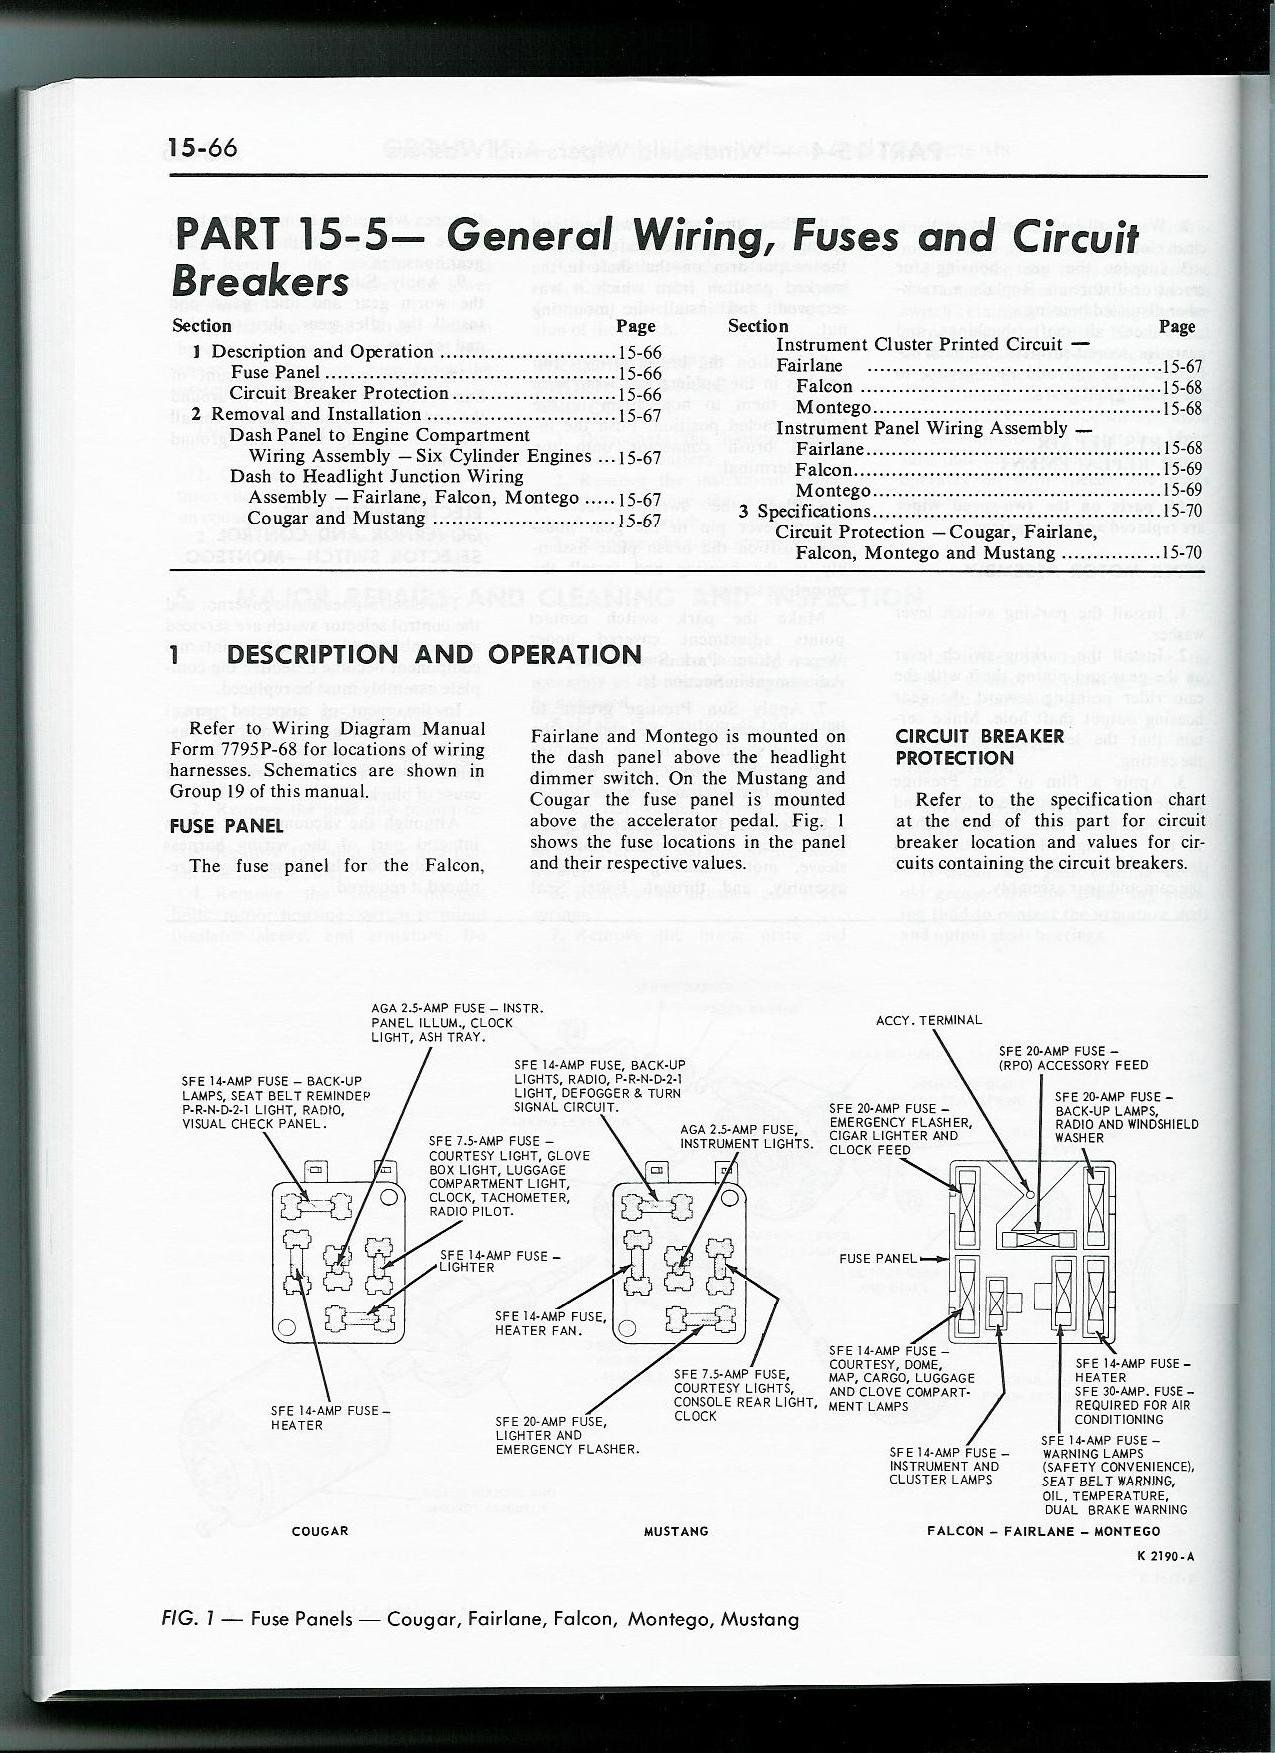 1970 Mustang Fuse Box Location Electrical Wiring Diagram House 69 Labeled Product Diagrams 2012 Ford Interior Rh Vellea Tripa Co 1967 2001 Power